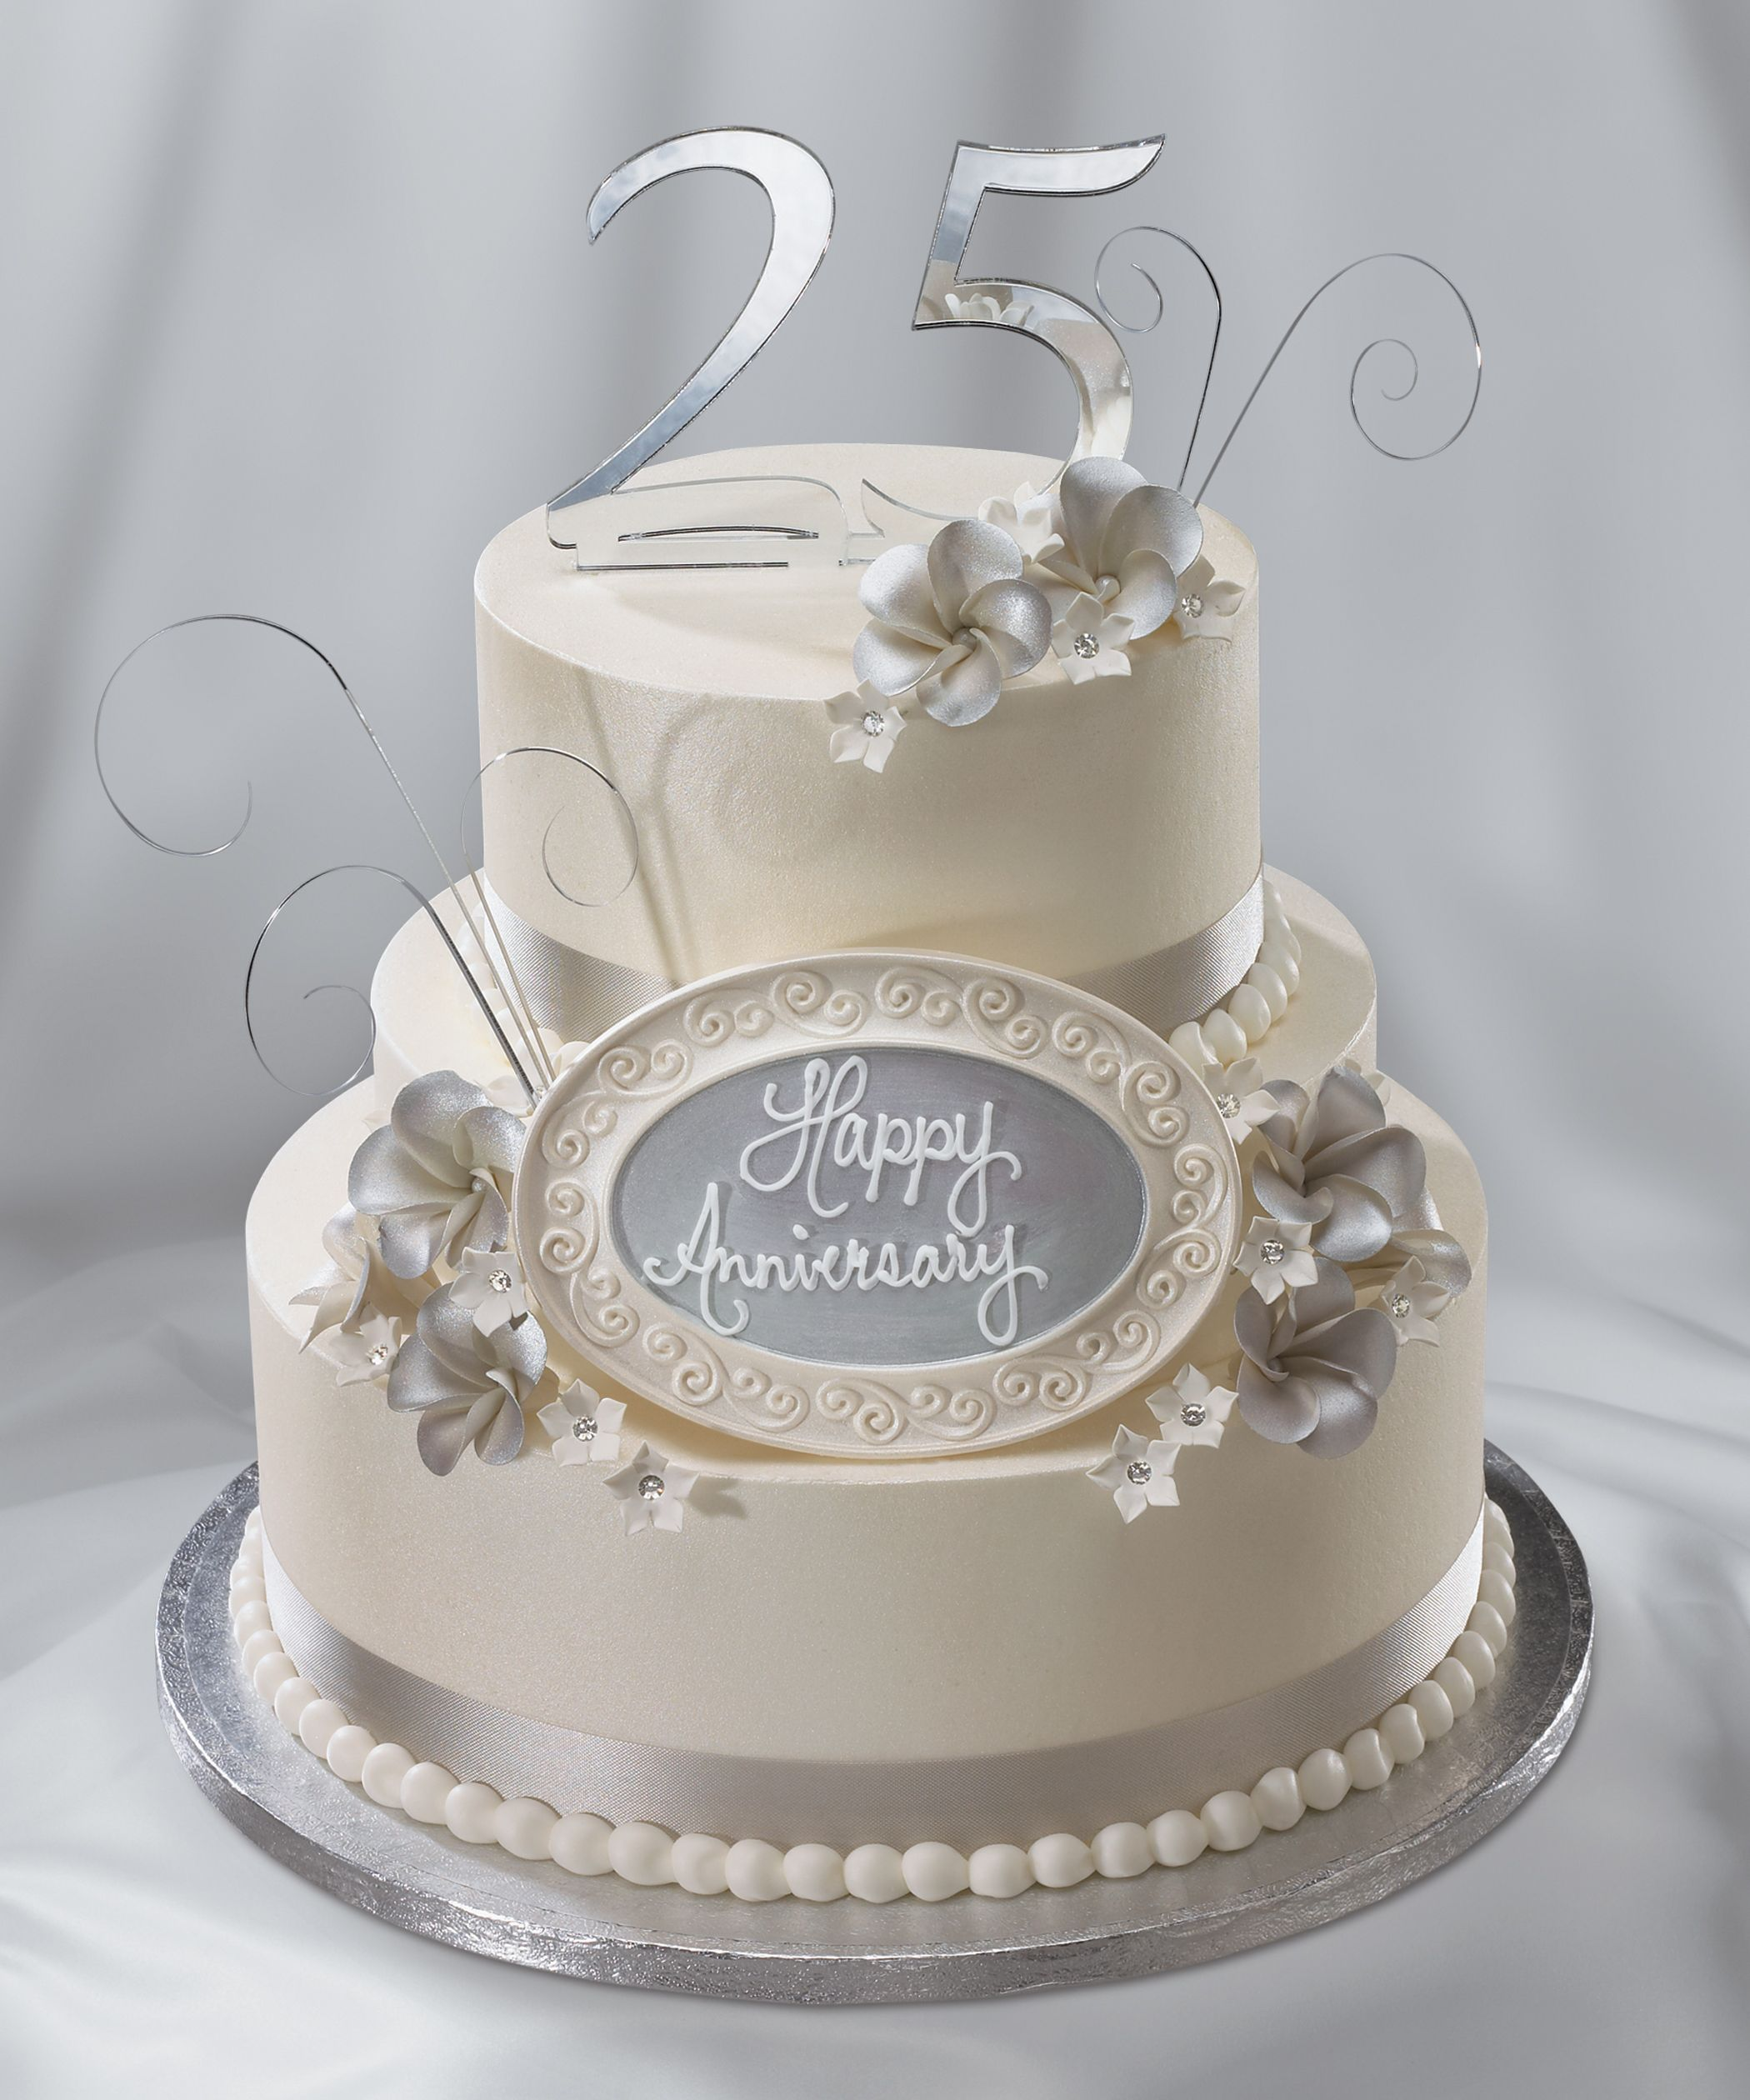 25th Wedding Anniversary Cake Silver Anniversary I Do Wedding